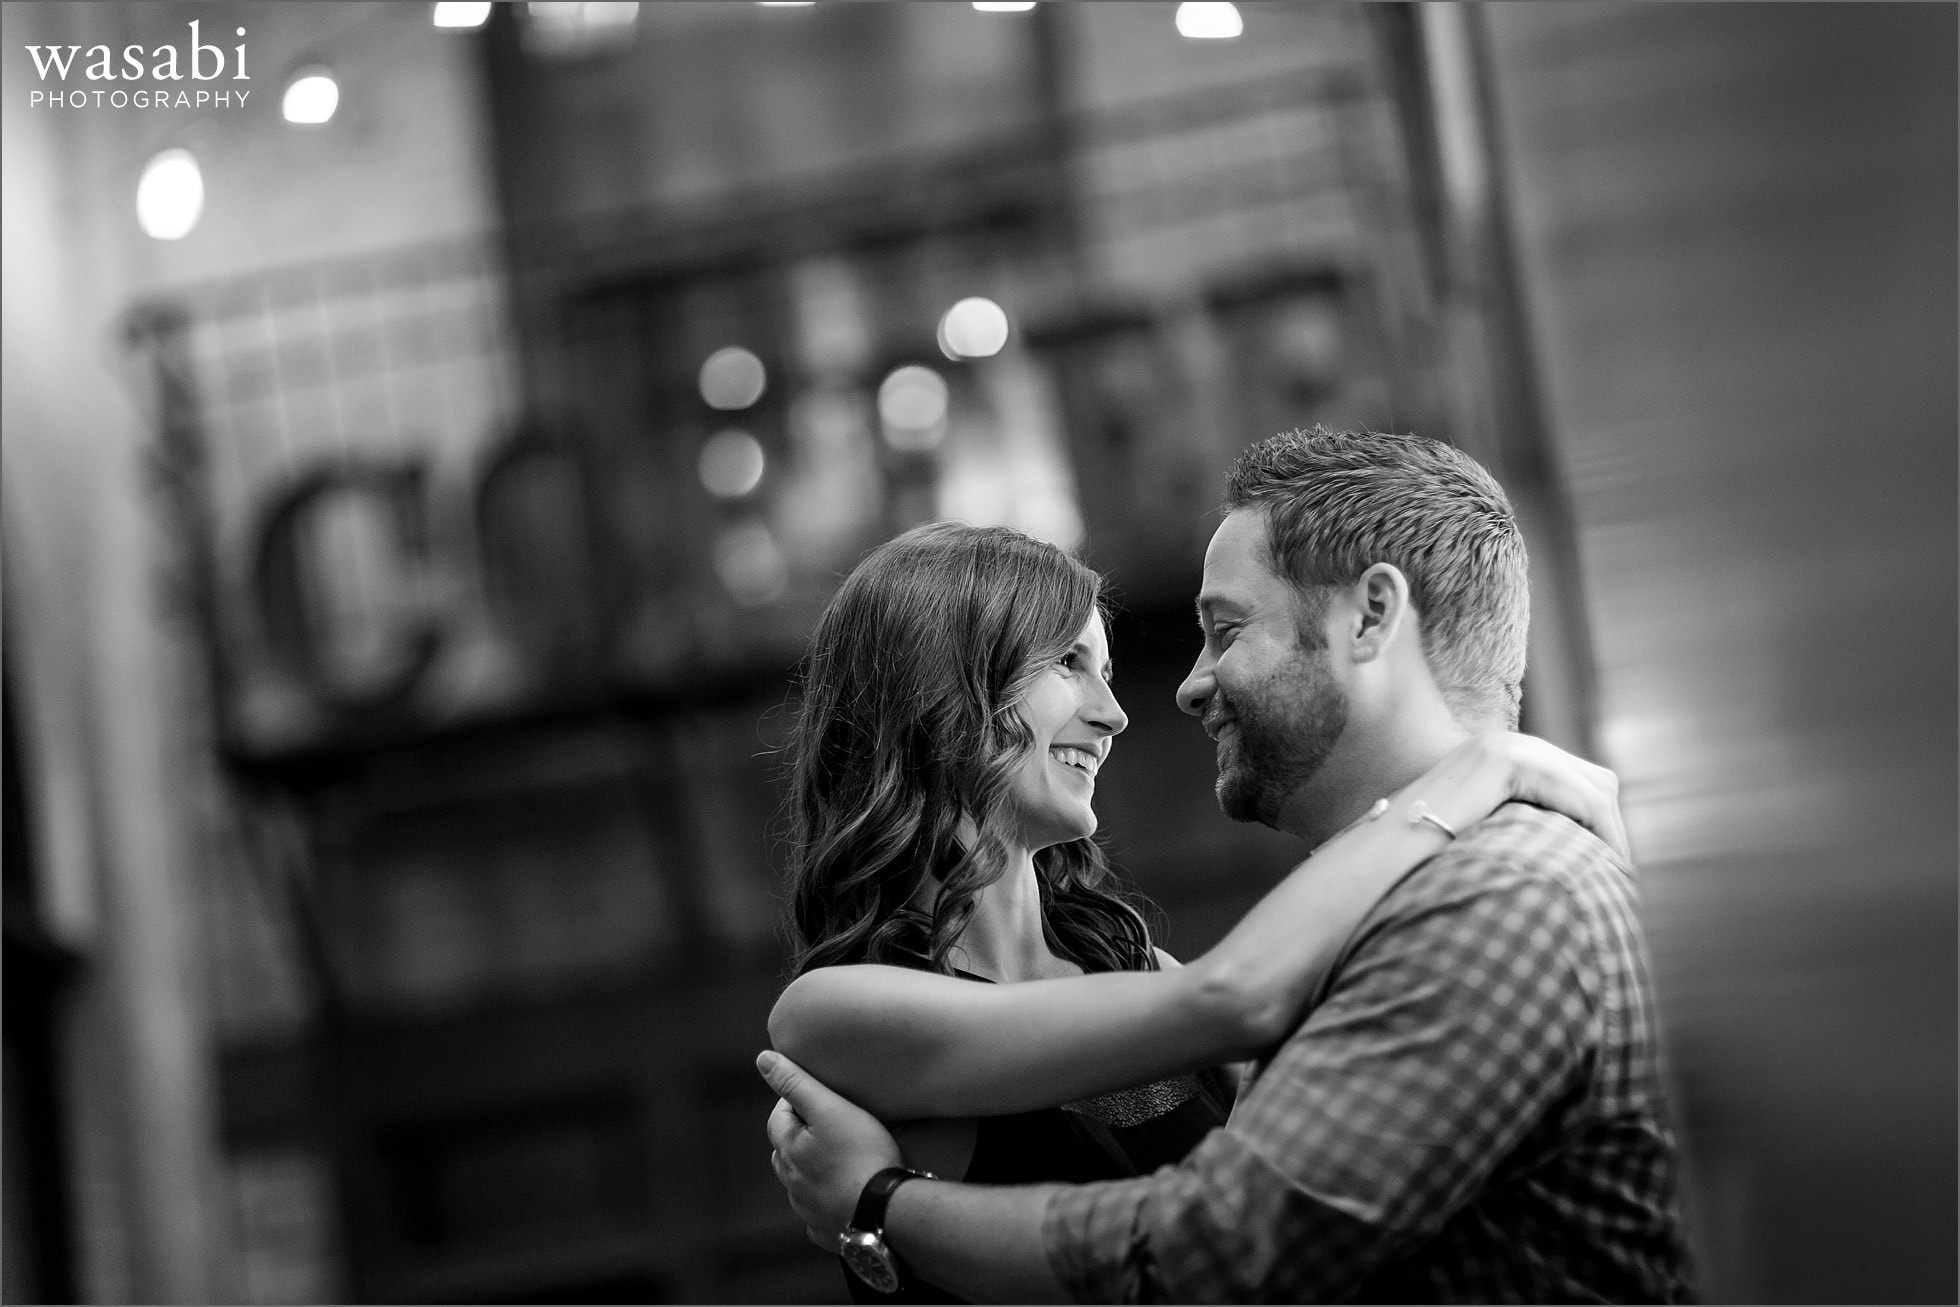 asado-coffee-shop-engagement-photos-03